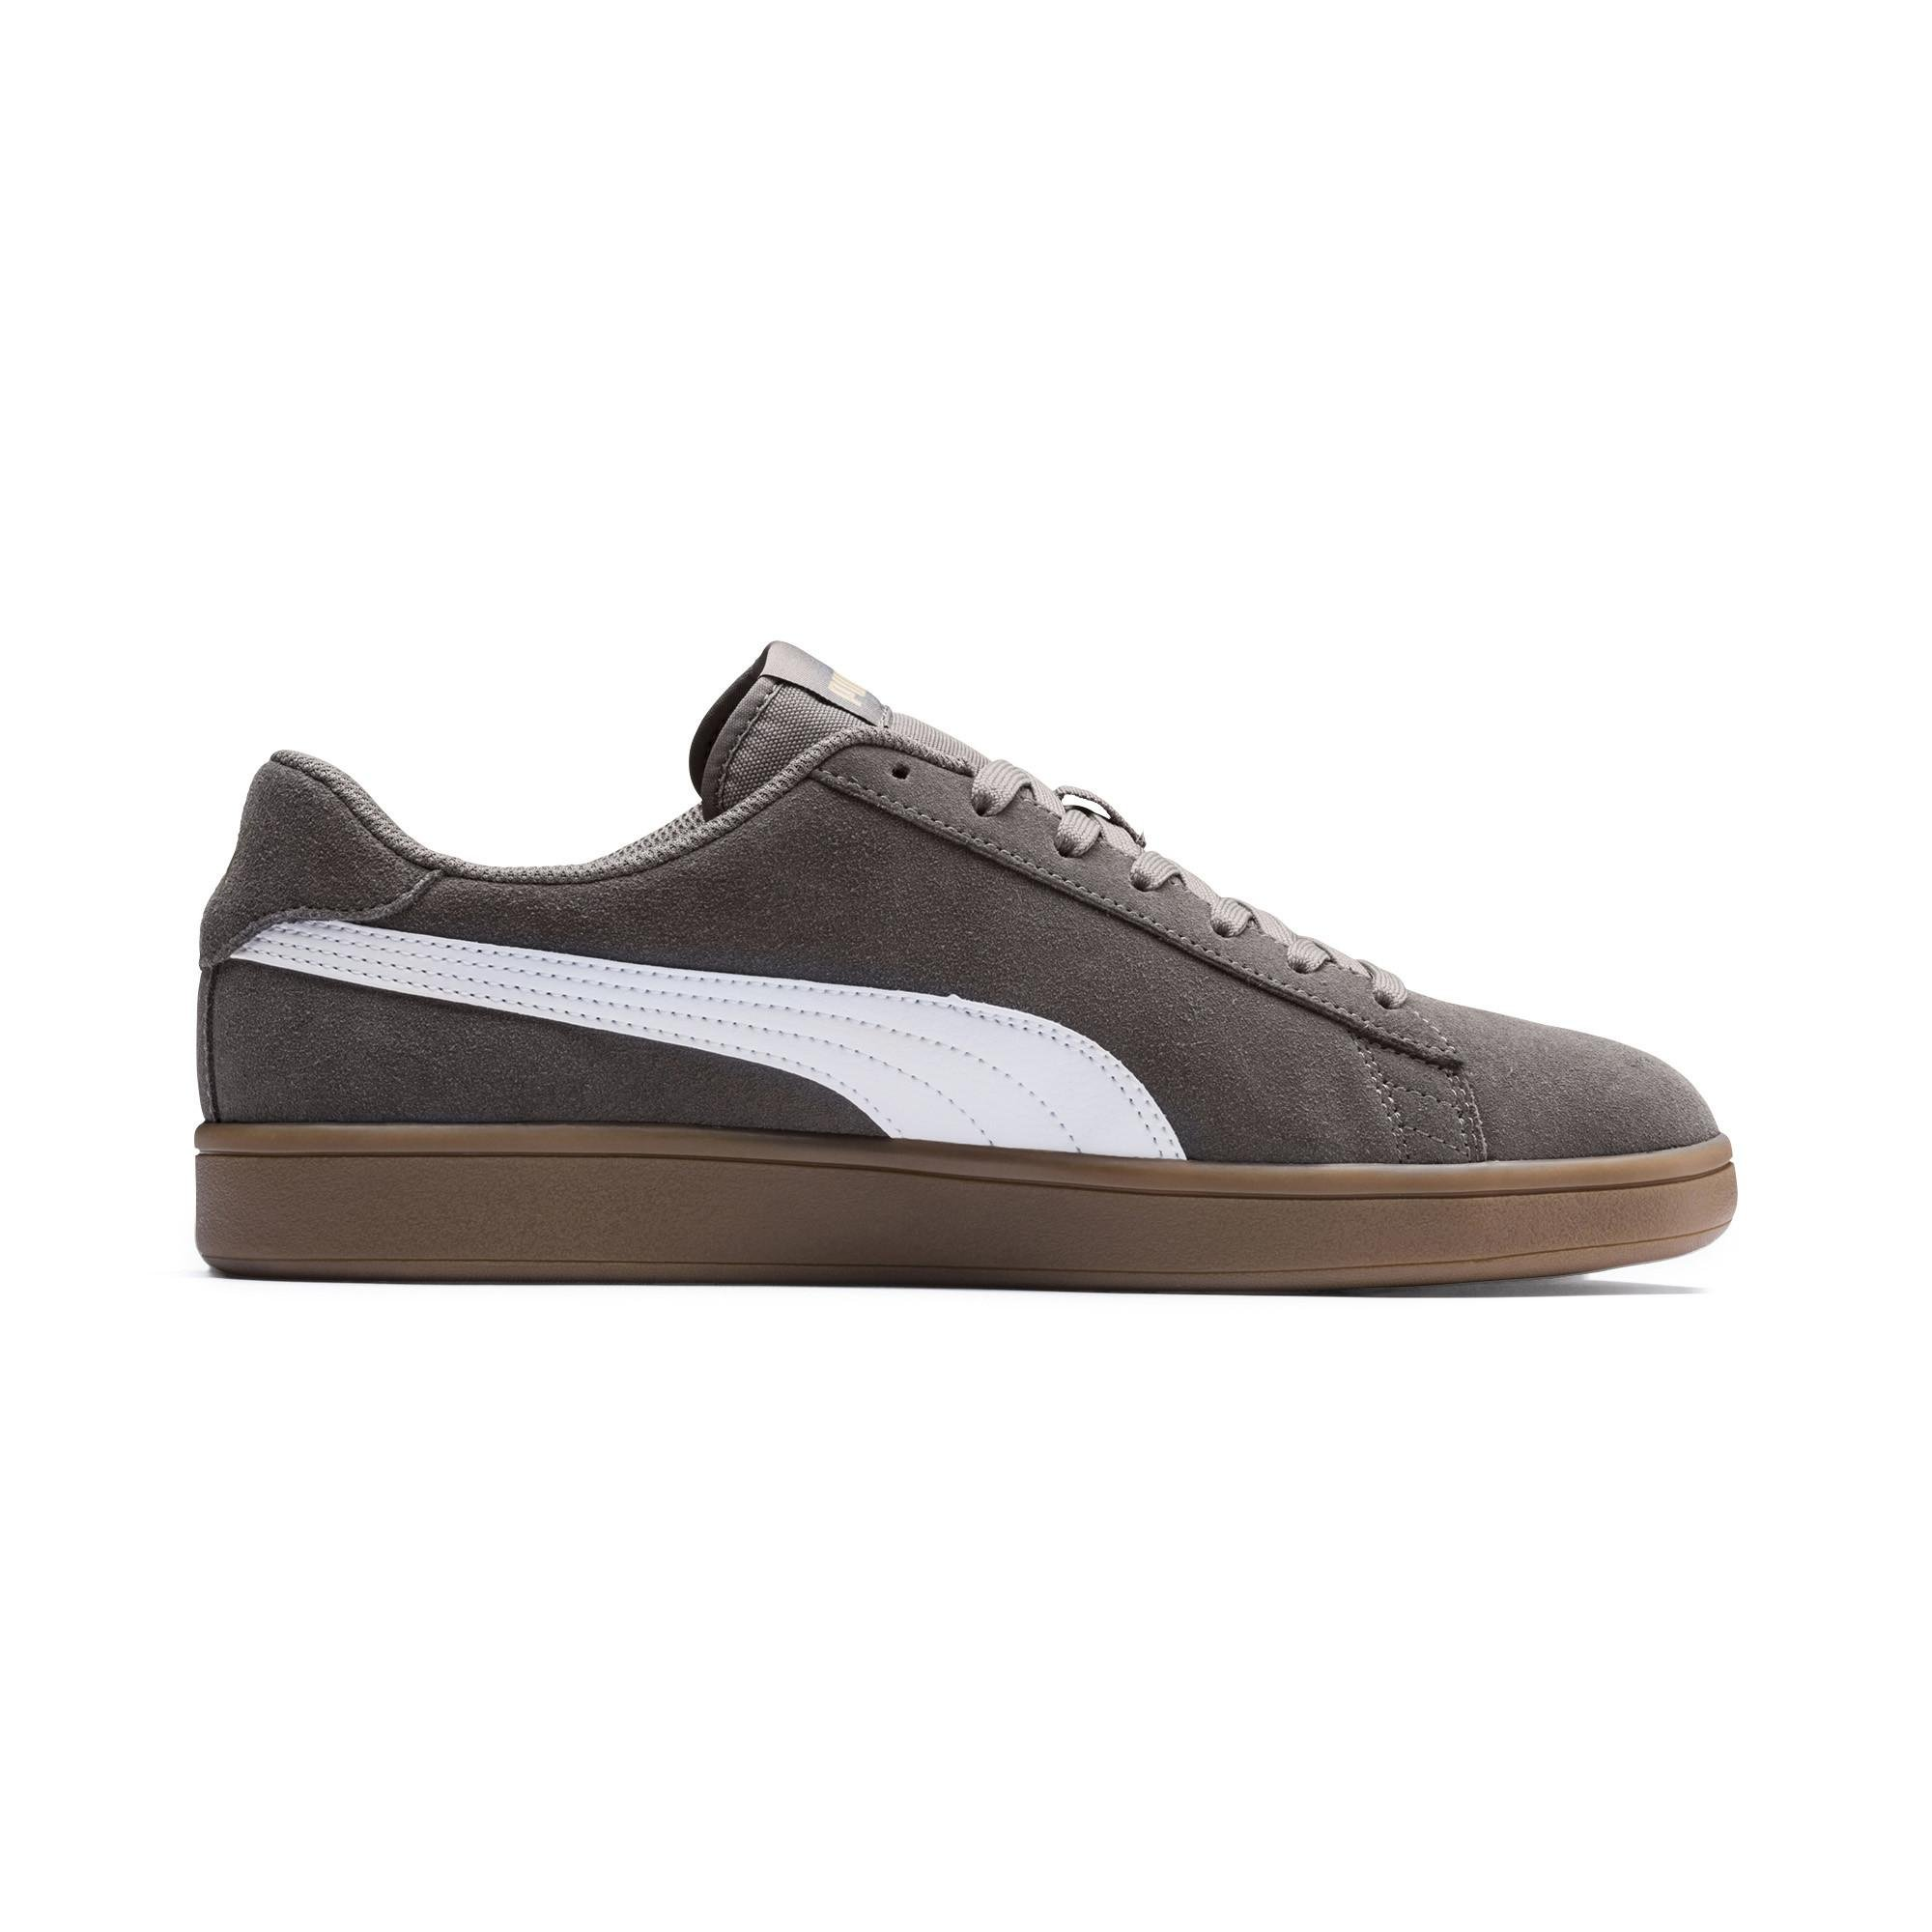 PUMA Suede Smash V2 Sneakers in 27 (Brown) for Men - Lyst